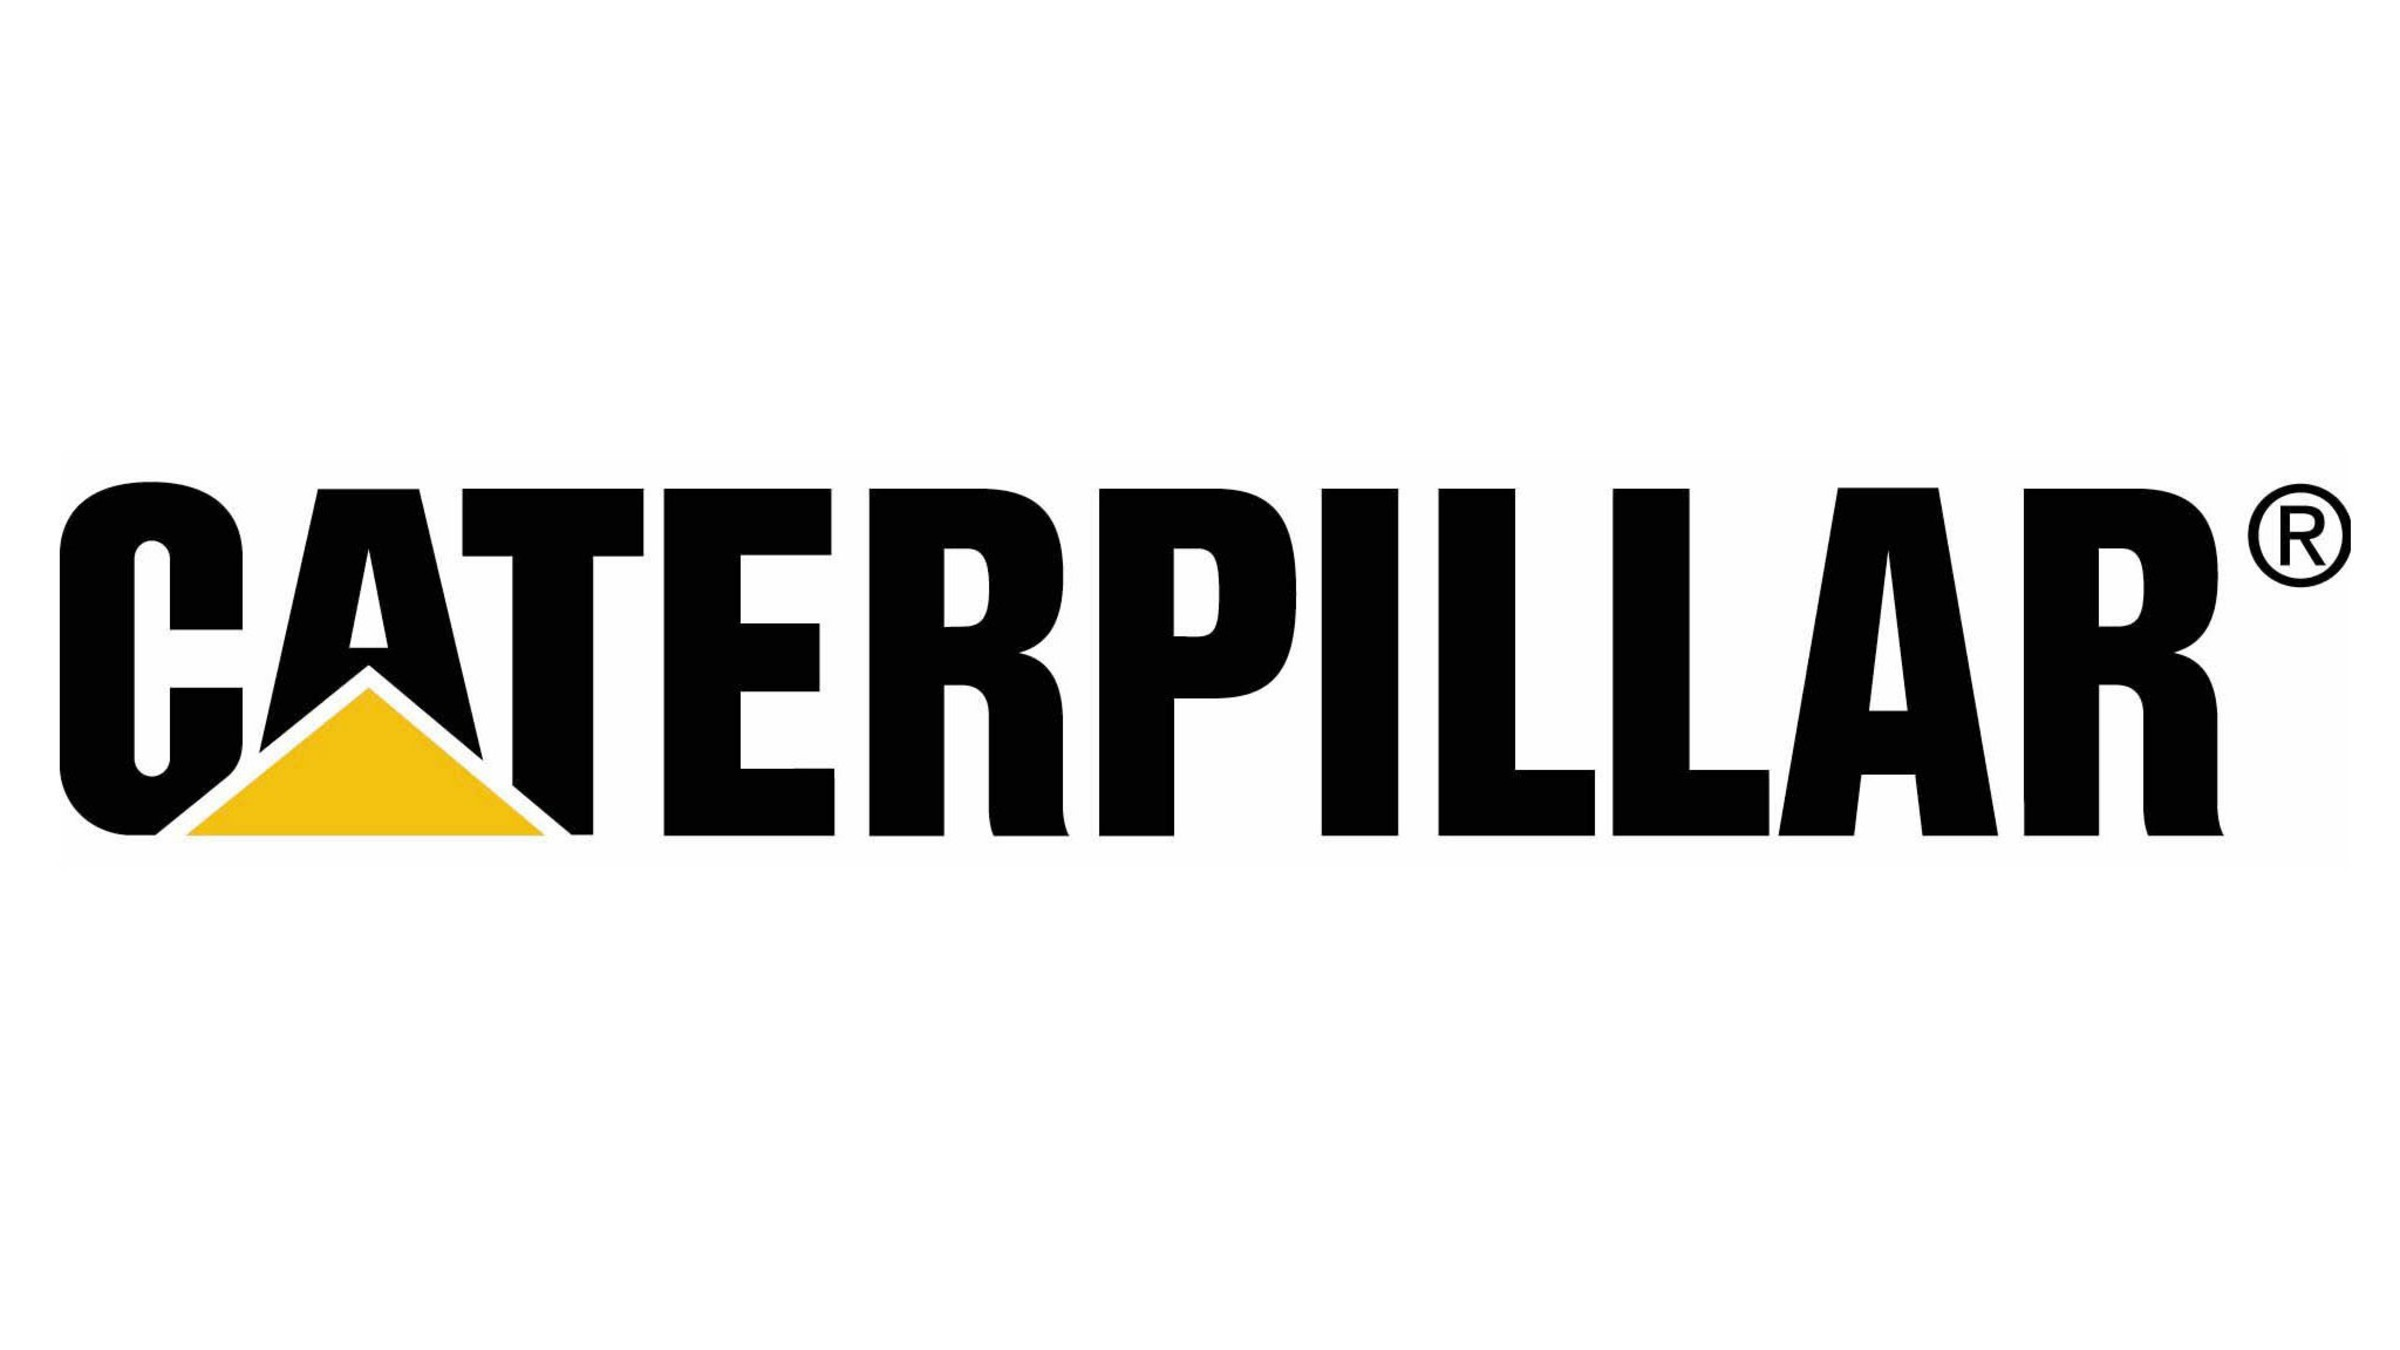 Caterpillar Hd Wallpapers